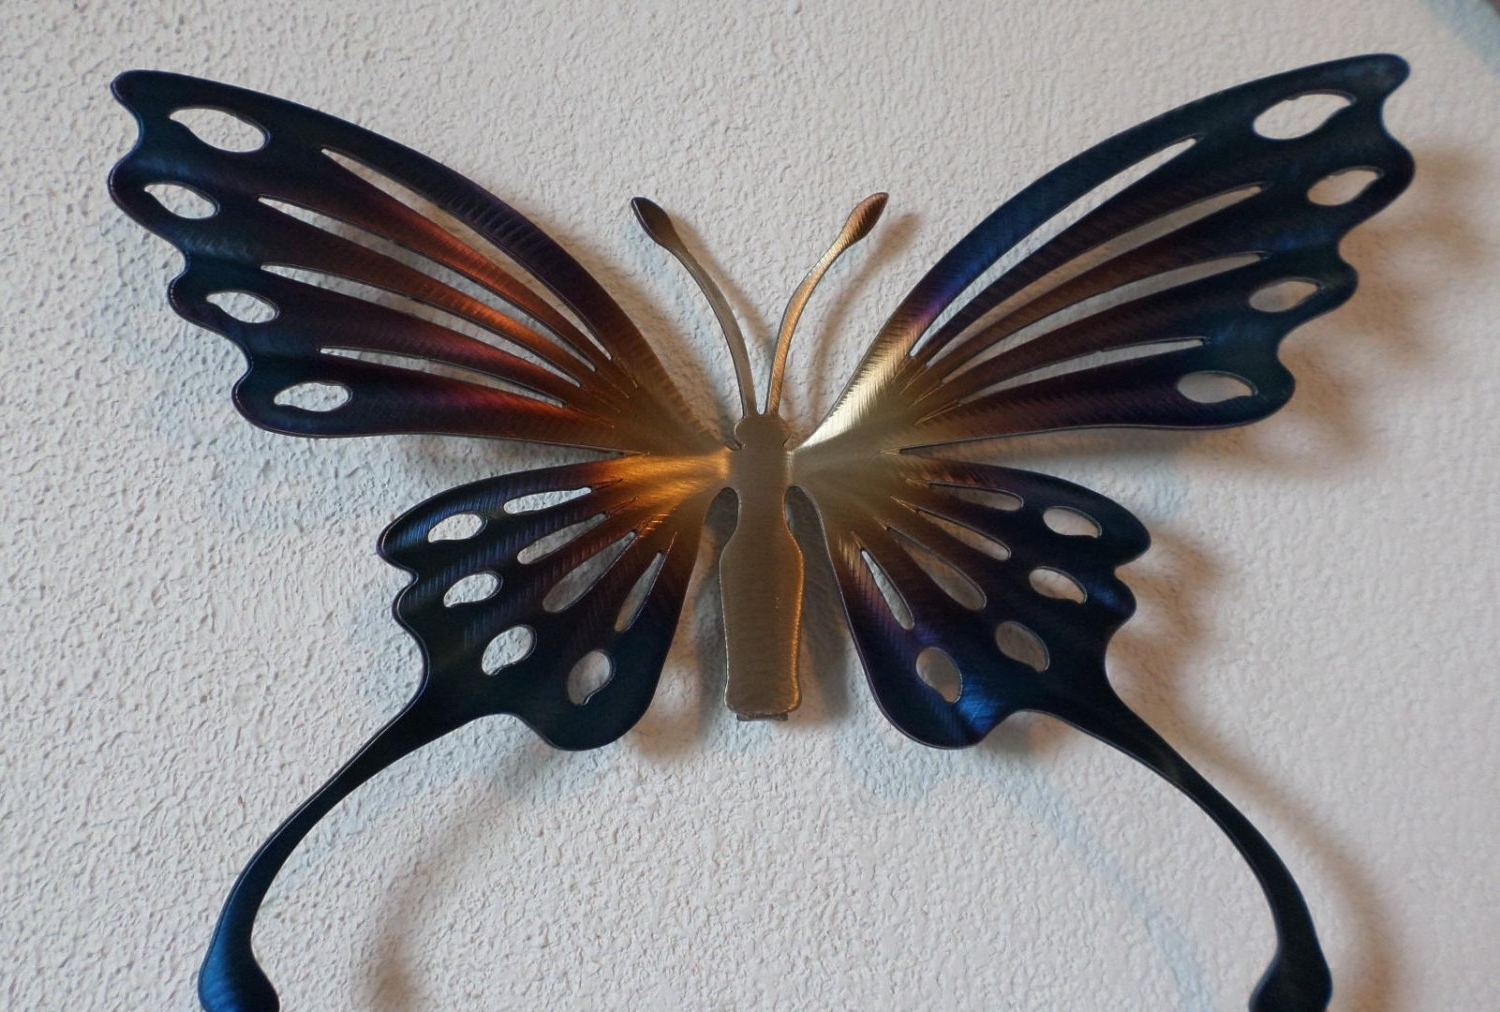 Recent Metal Butterfly Wall Decor Warm Brown Wall Art With Glass Pearls Regarding Large Metal Butterfly Wall Art (View 6 of 15)